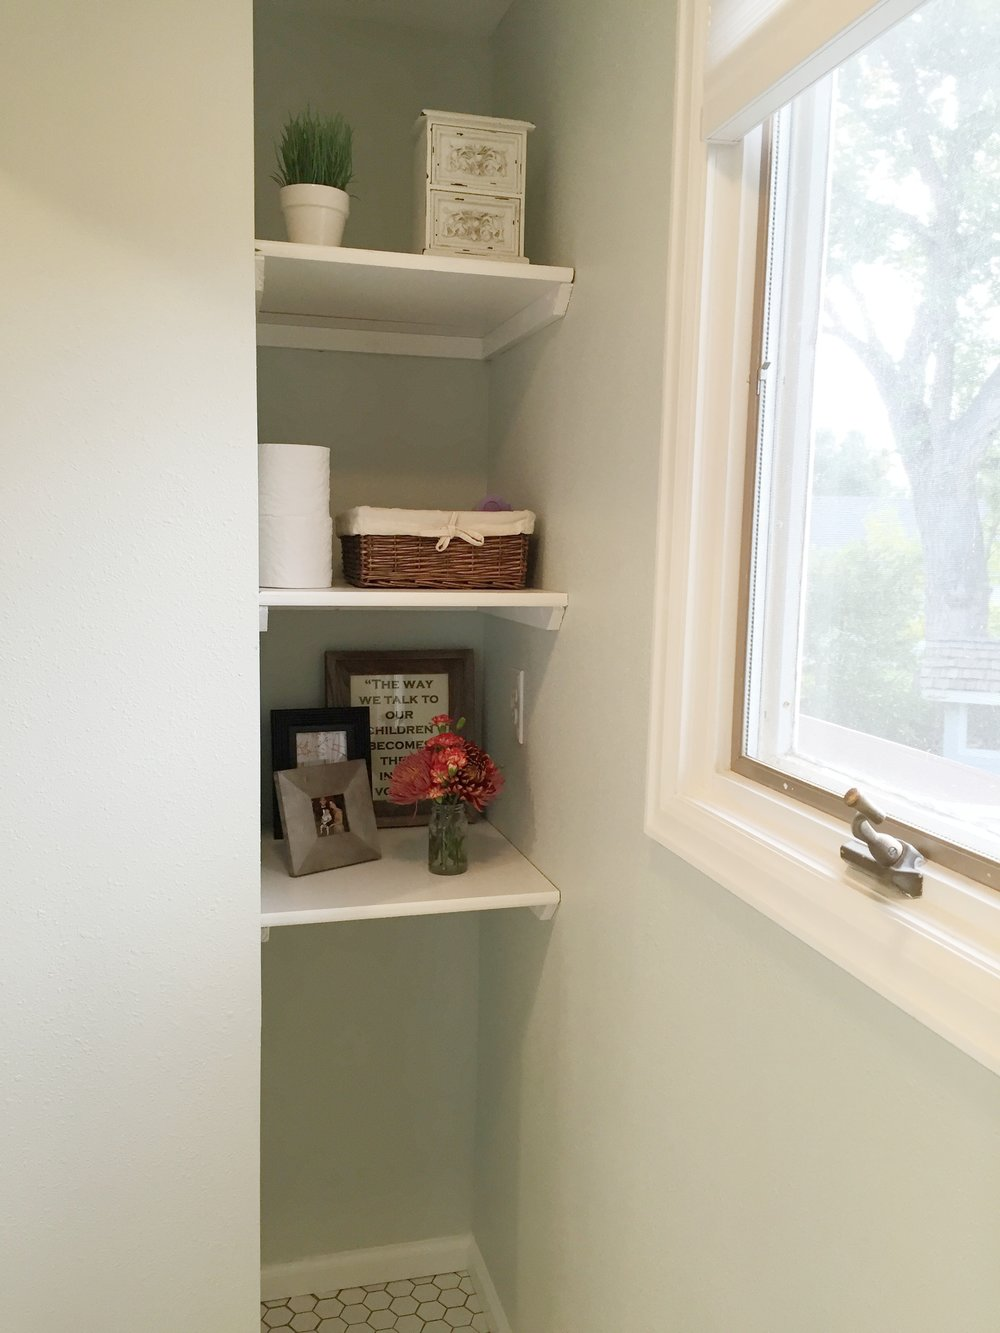 Shelving in the toilet room